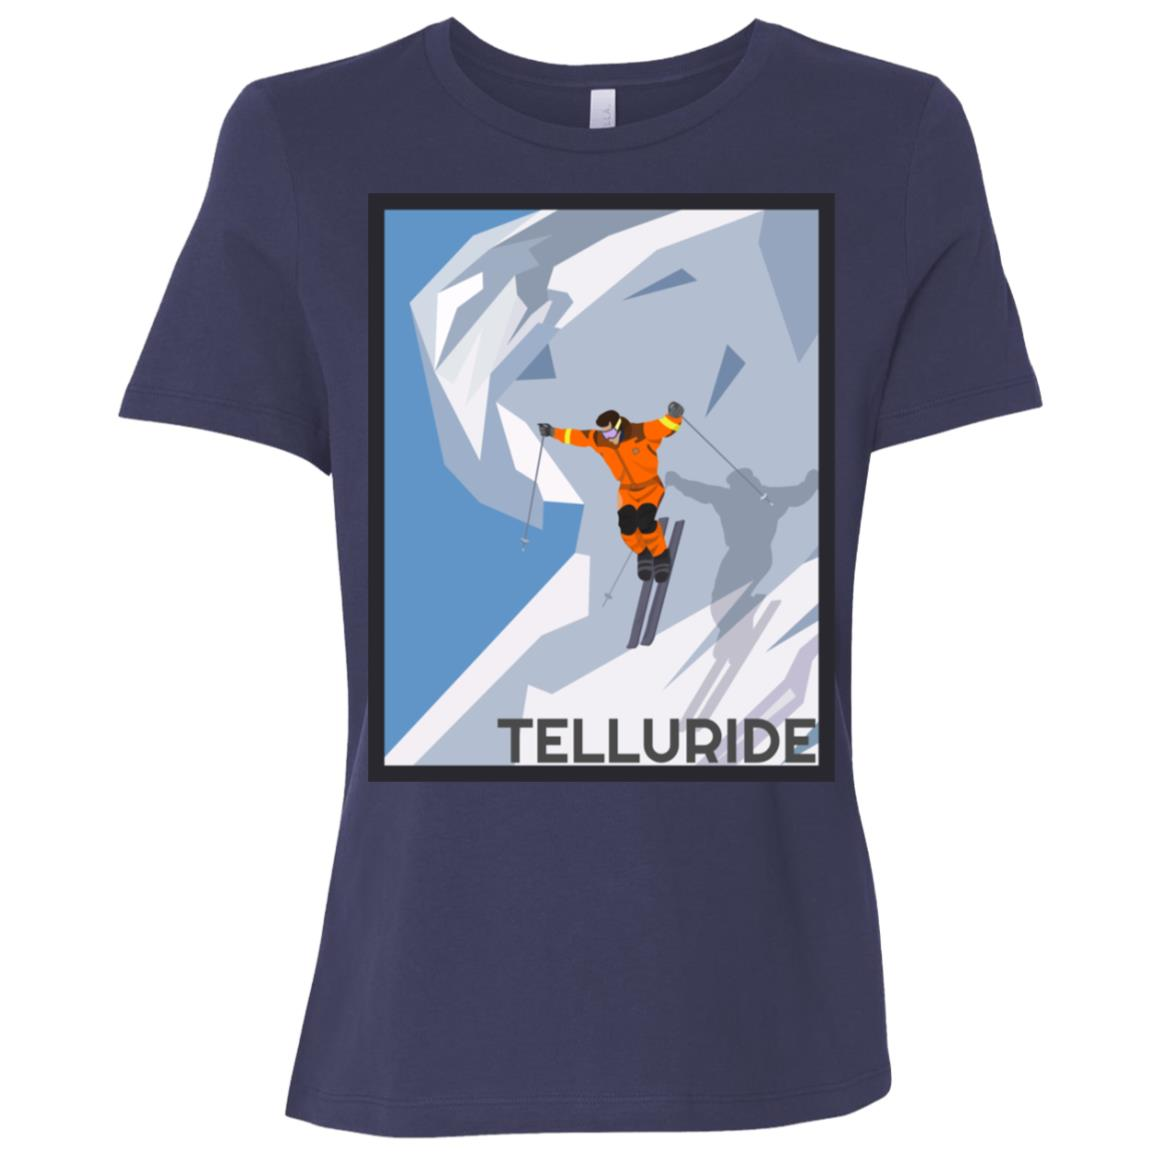 Telluride, Colorado Vintage Ski Poster Women Short Sleeve T-Shirt